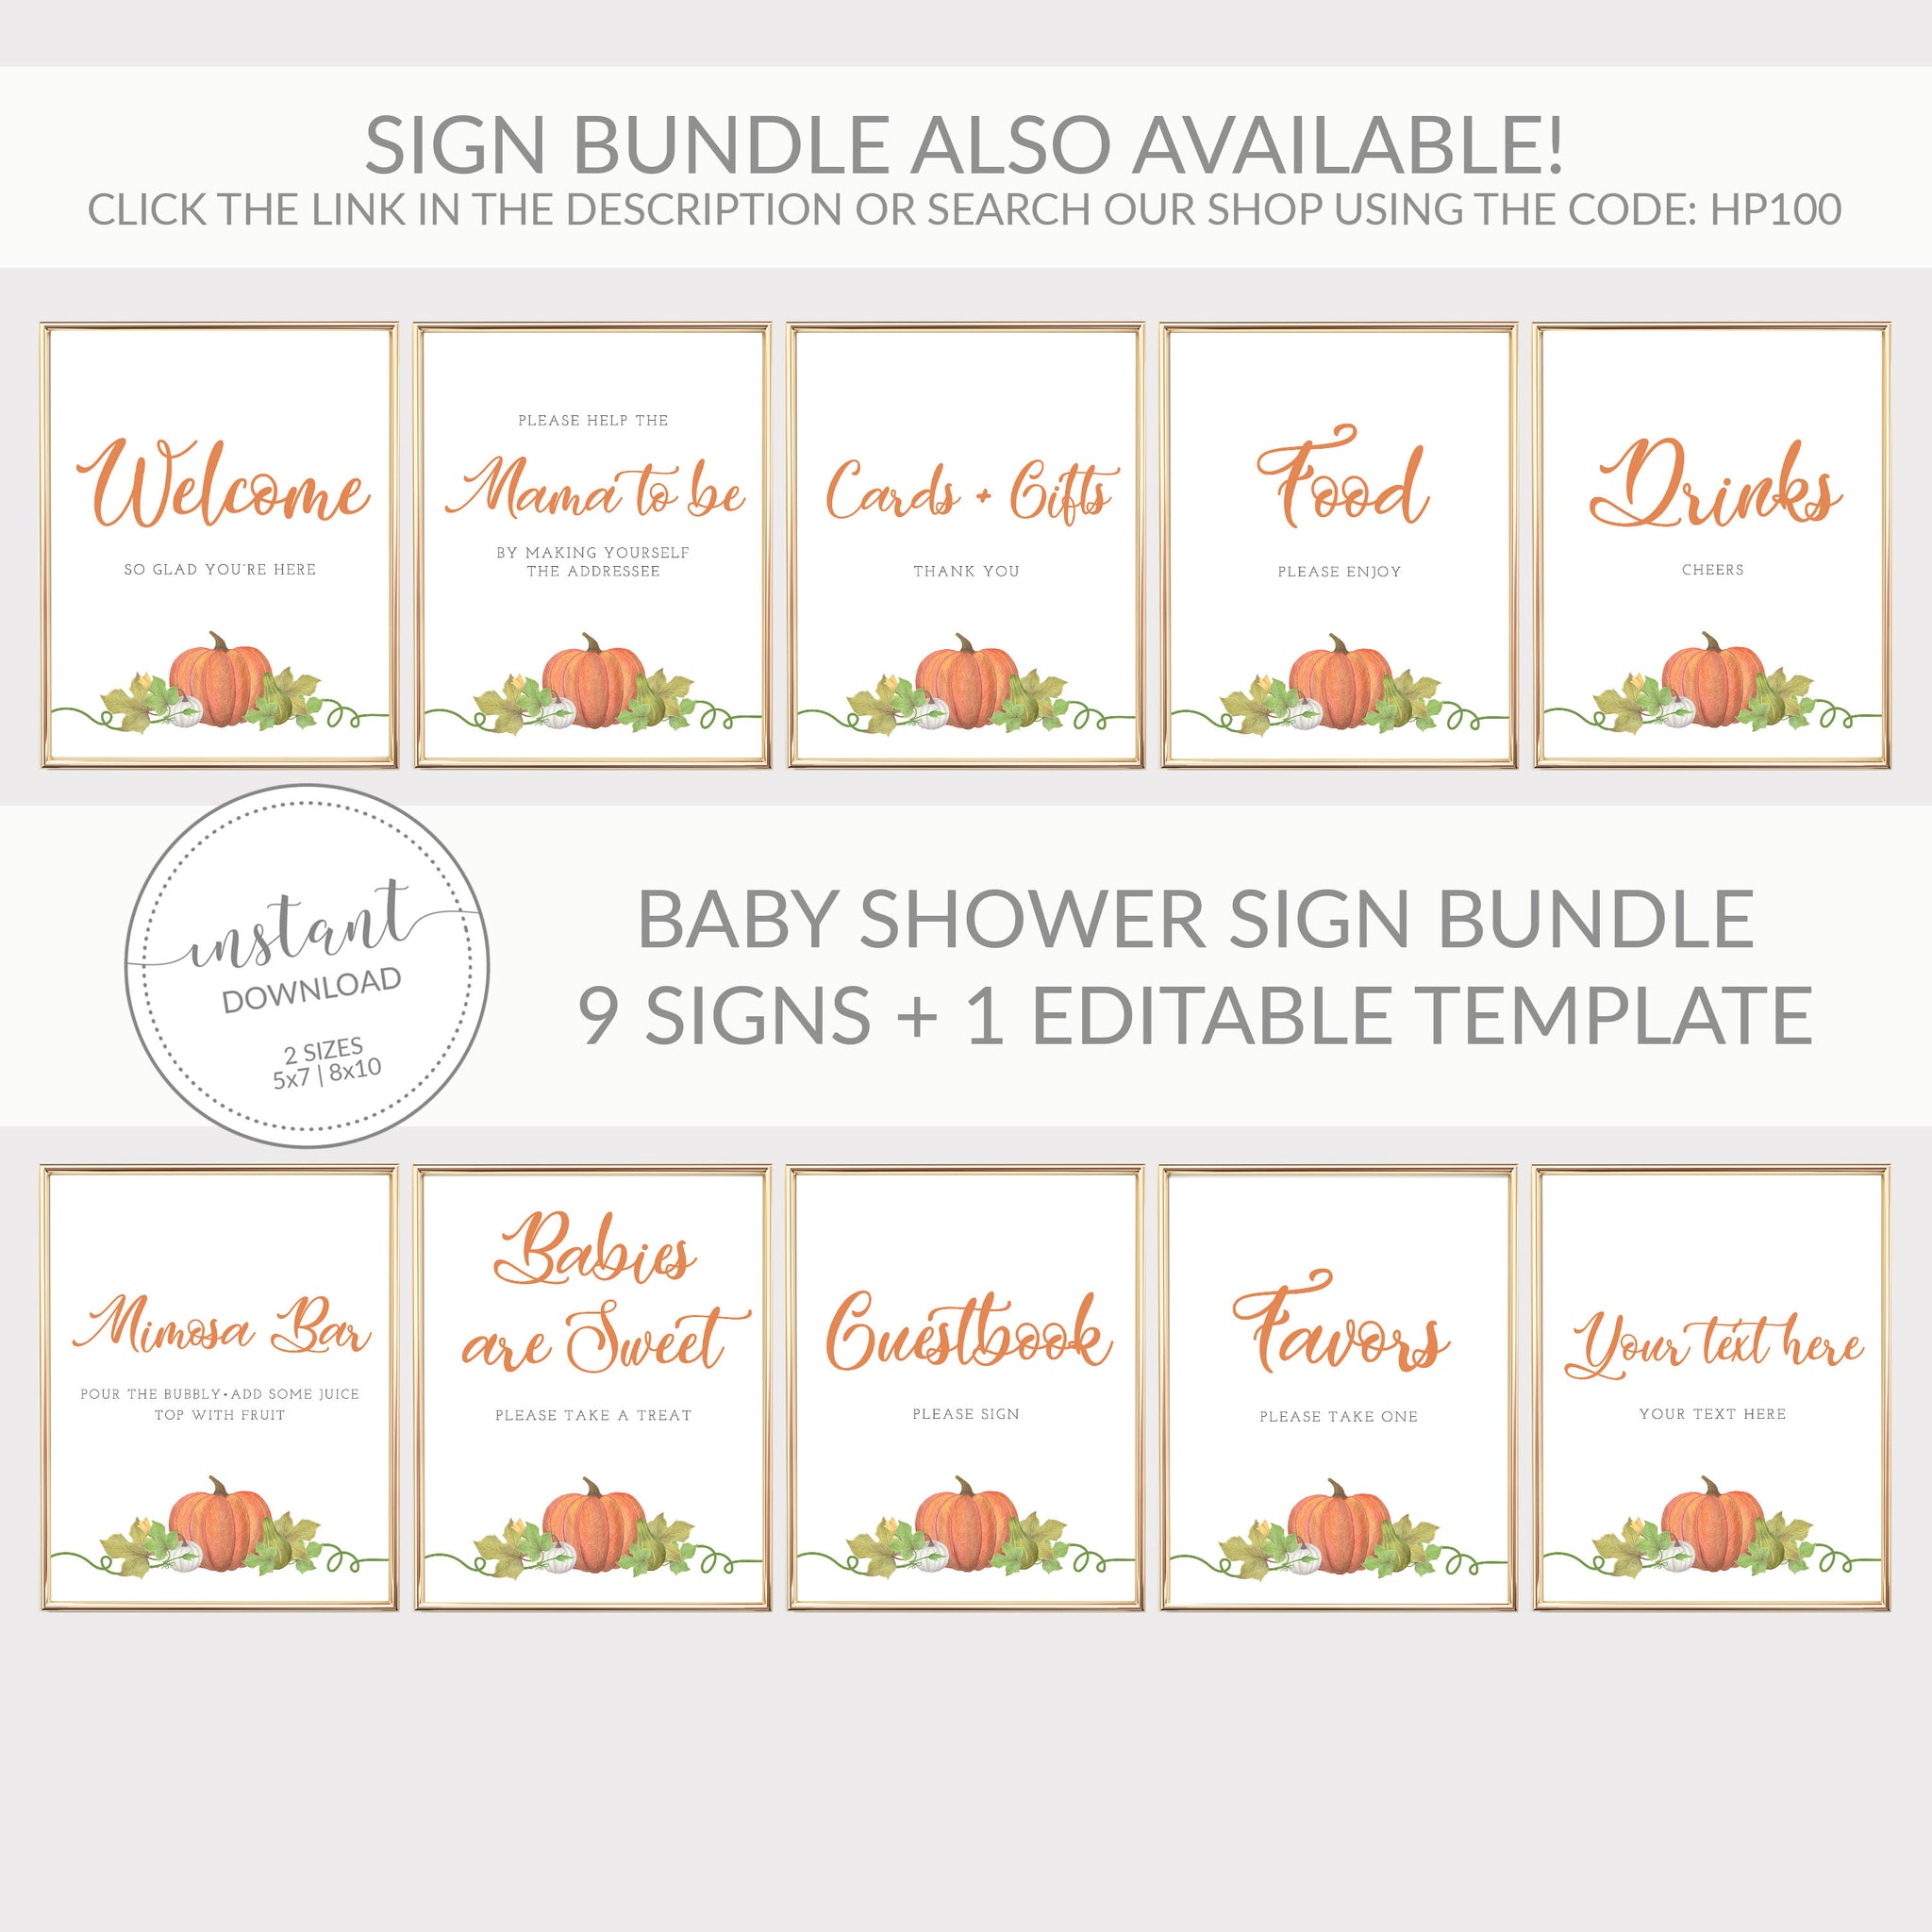 Pumpkin Baby Shower Drinks Sign Printable INSTANT DOWNLOAD, Pumpkin Birthday Party Sign, Pumpkin Baby Shower Decorations Supplies - HP100 - @PlumPolkaDot